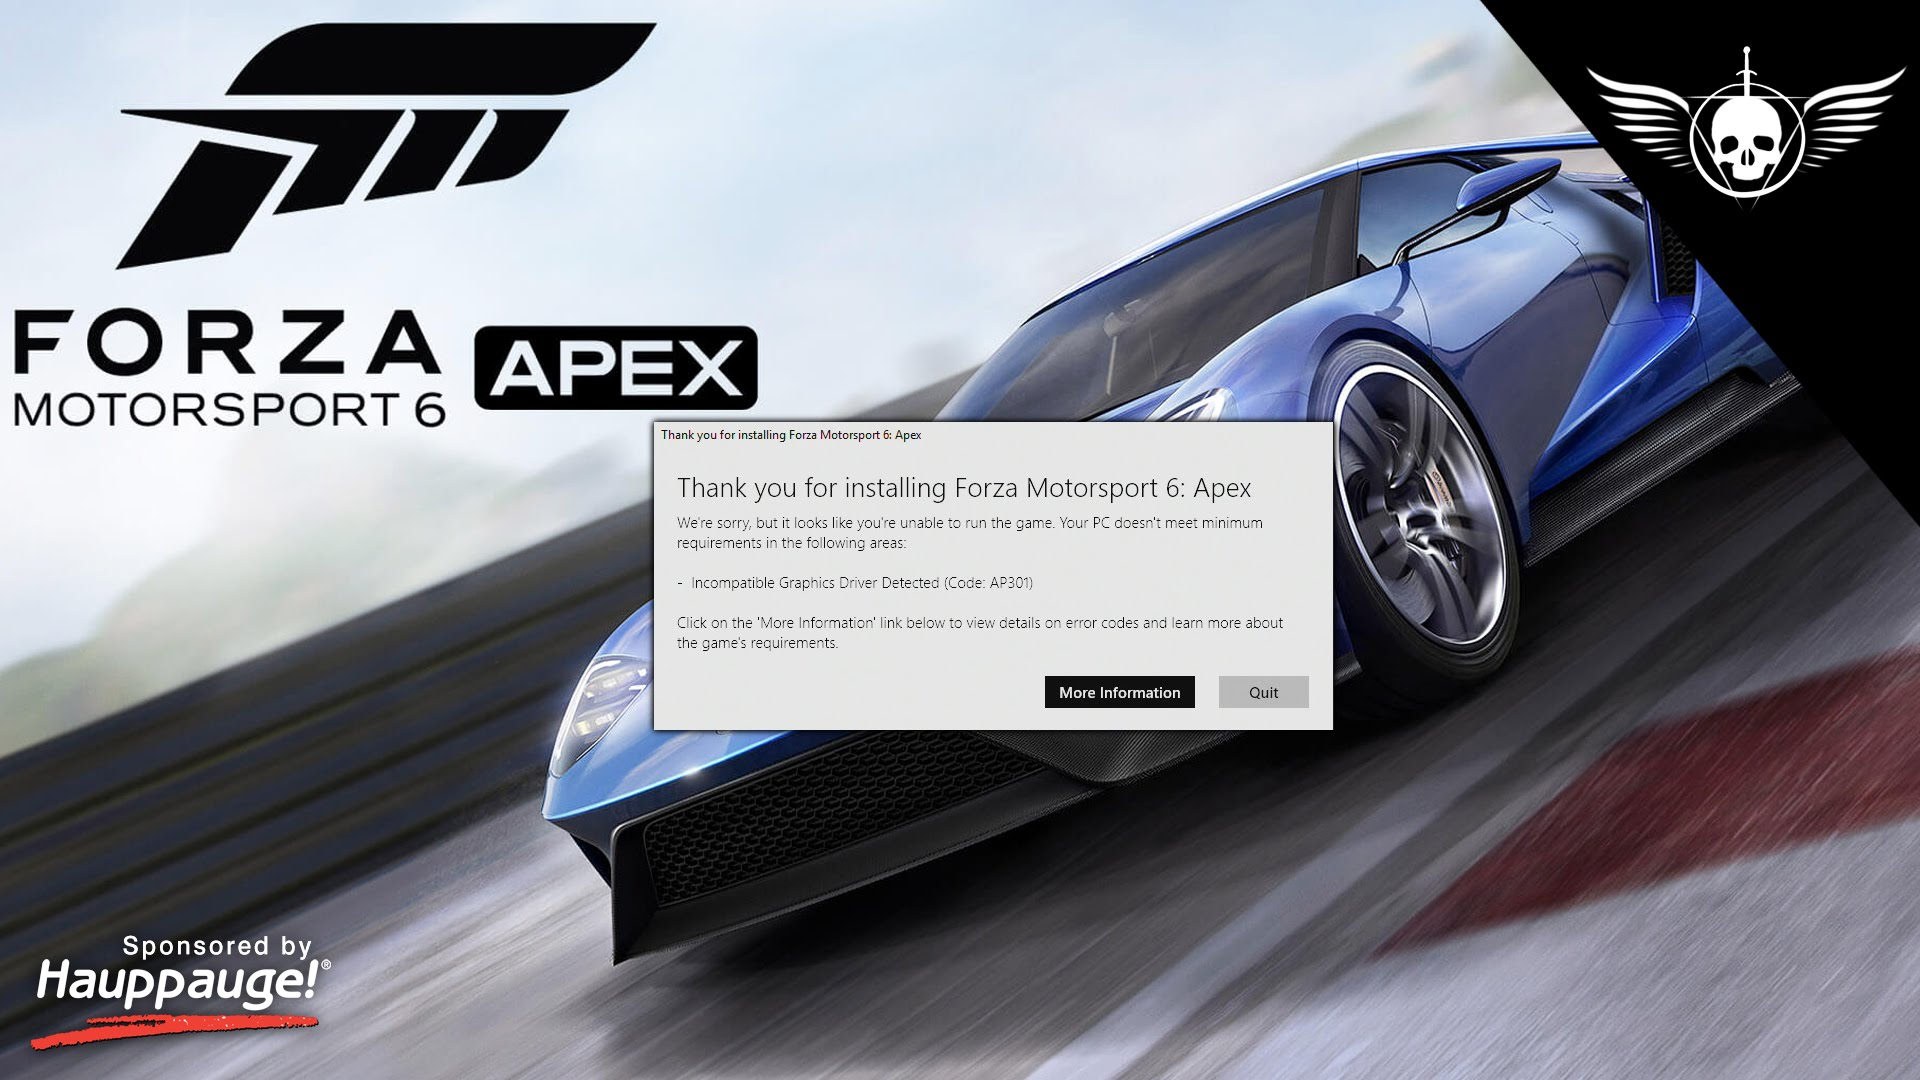 Forza Motorsport 6: Apex wallpapers, Video Game, HQ Forza